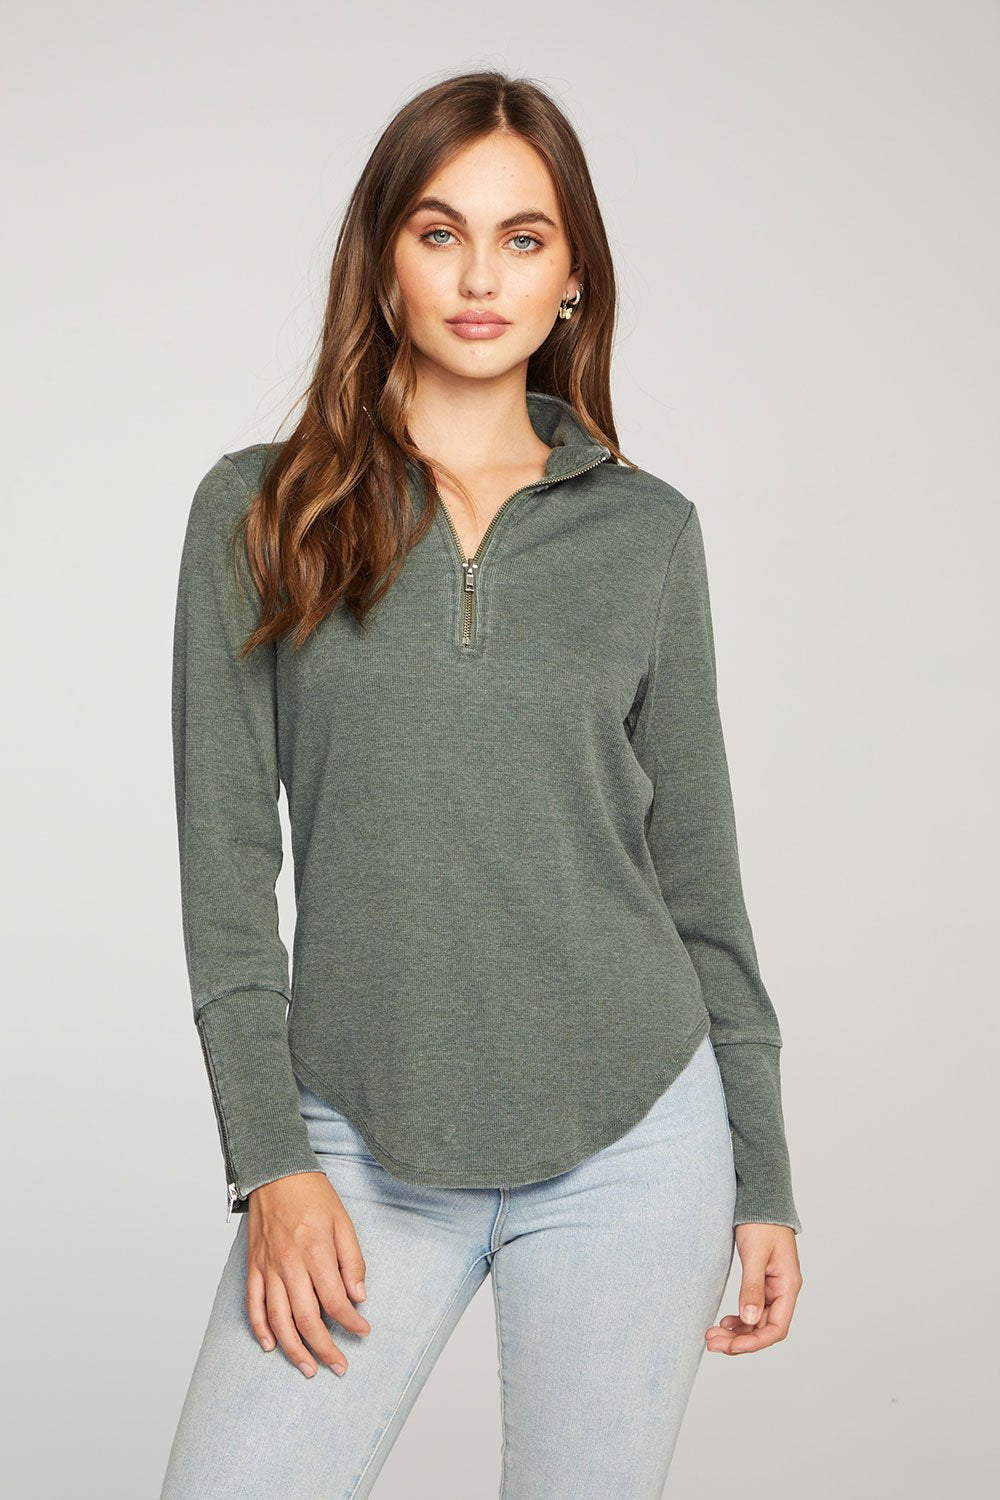 Chaser Ribbed Mock Neck with Zippers